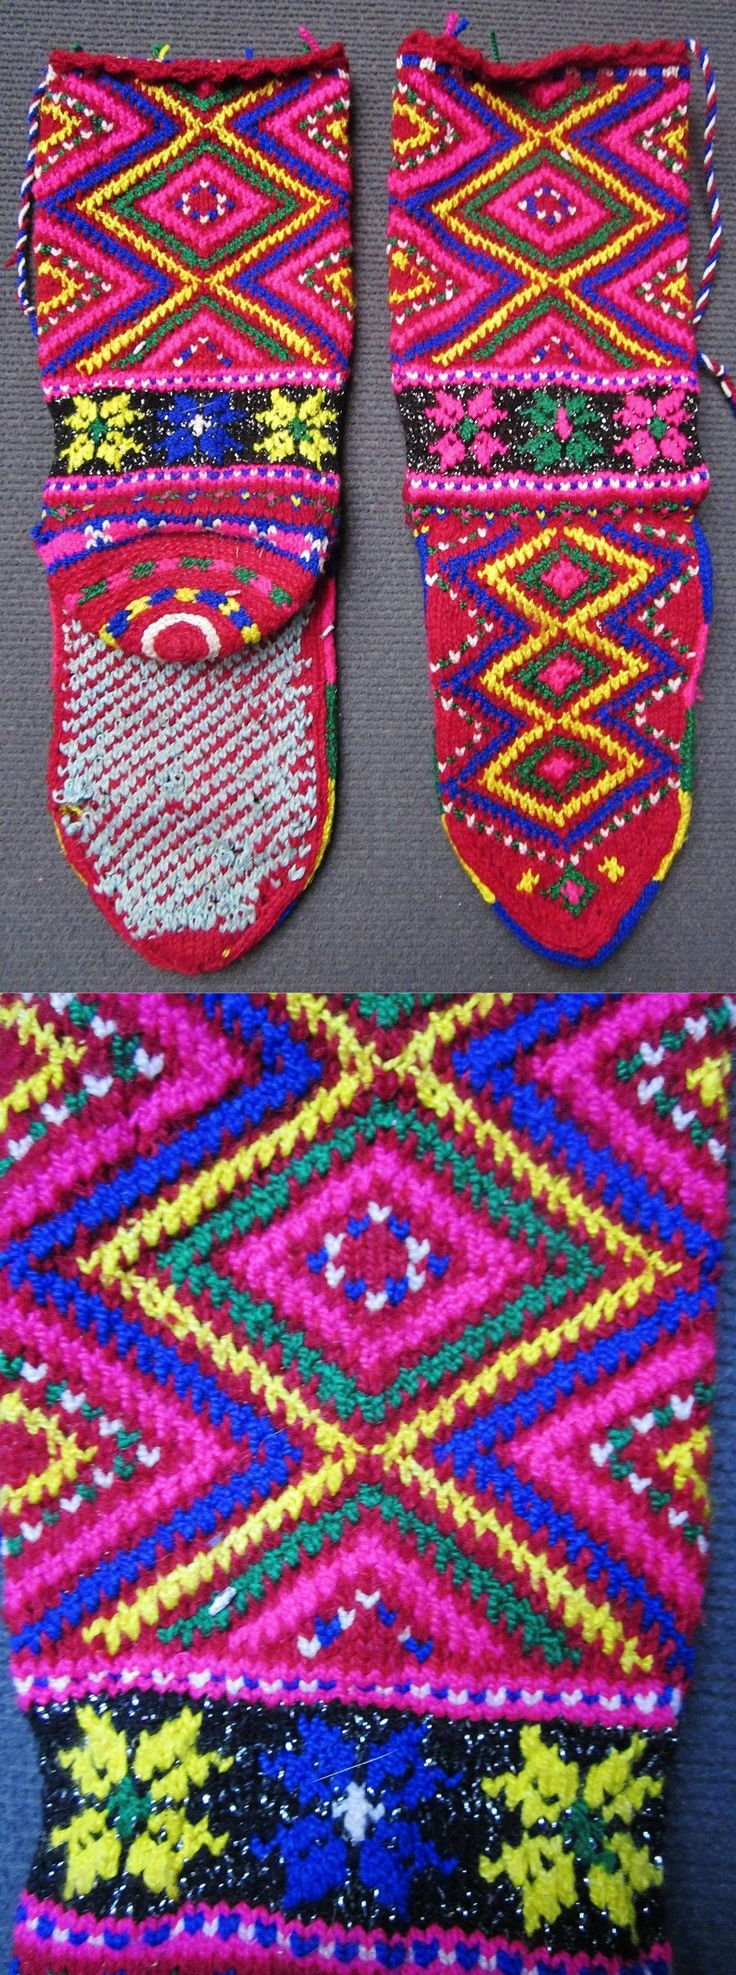 Traditional hand-knitted bridal stockings.   From Pomak immigrants, settled in the Biga district (Çanakkale province).  1950-1975.  Wool & metallic thread.  The pattern shows several diamond-shaped 'ayna' (mirror), which is an amulet against the evil eye.  (Inv.nr. çor012 - Kavak Costume Collection - Antwerpen/Belgium).